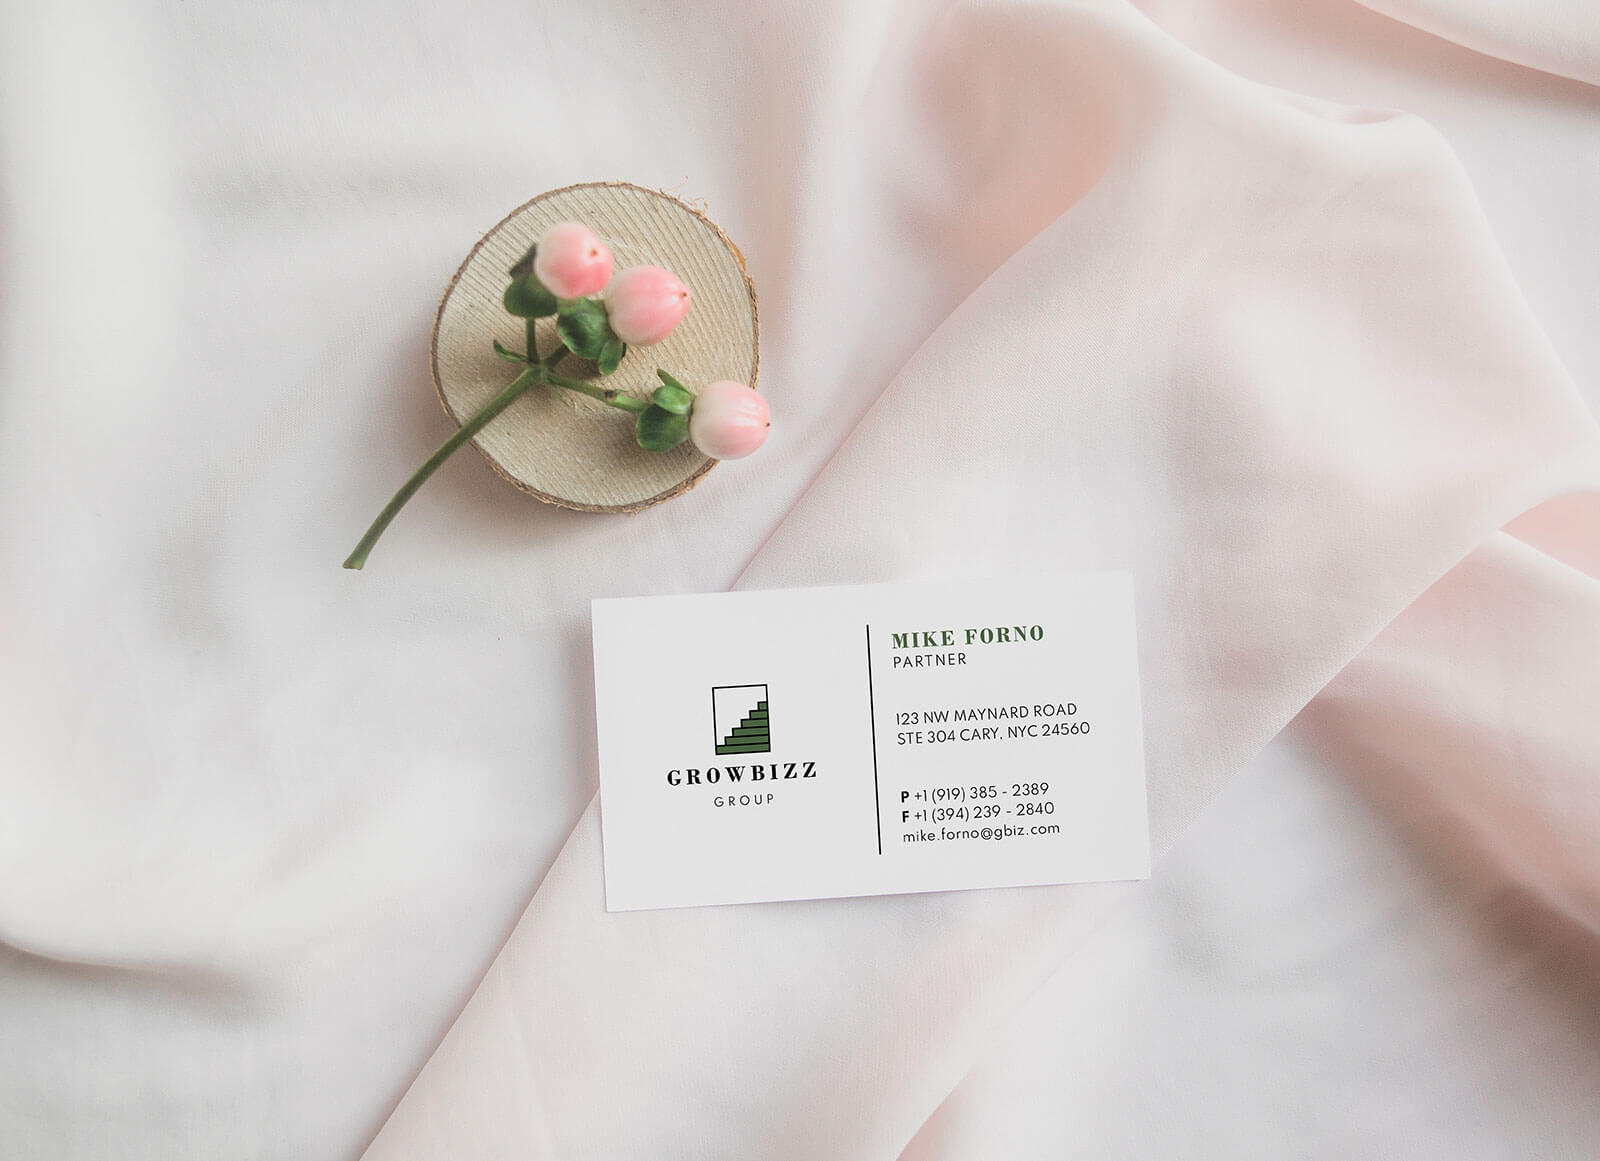 Free-Sophisticated-Business-Card-Design-Template-&-Mockup-PSD